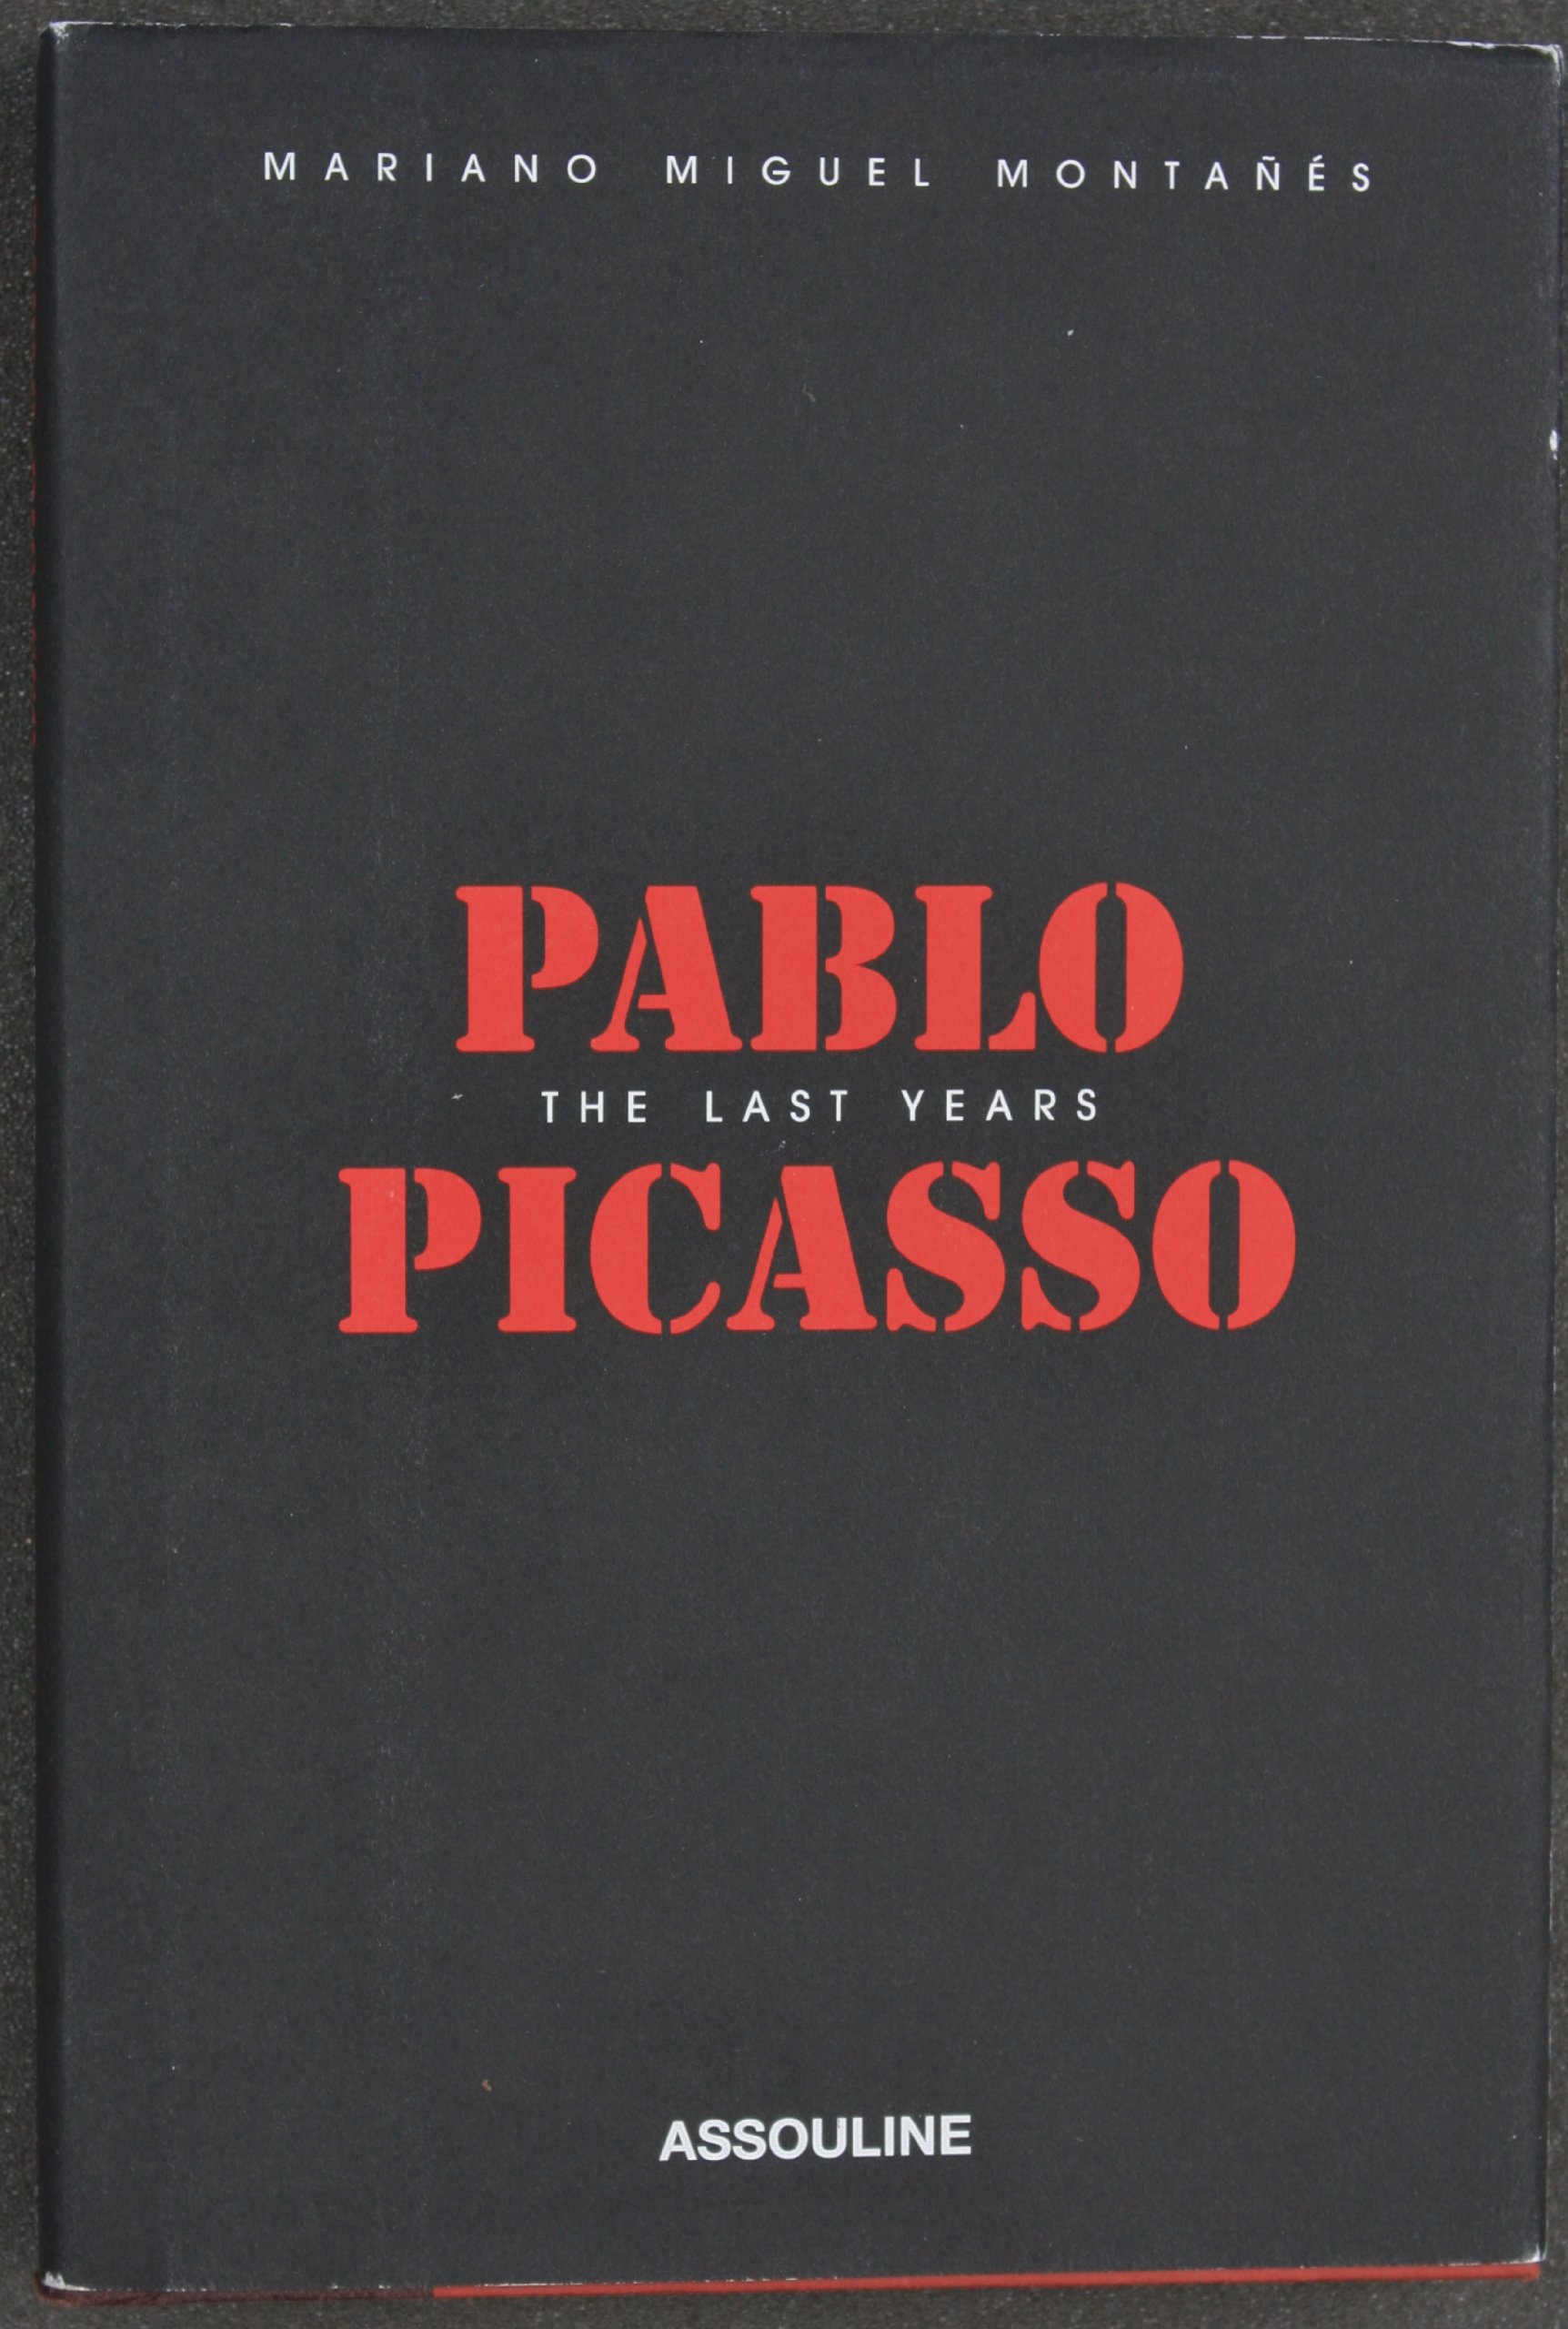 pablo picasso the last years mariano miguel montanes foreword by olivier widmaier picasso introduction by alberto miguel montanes